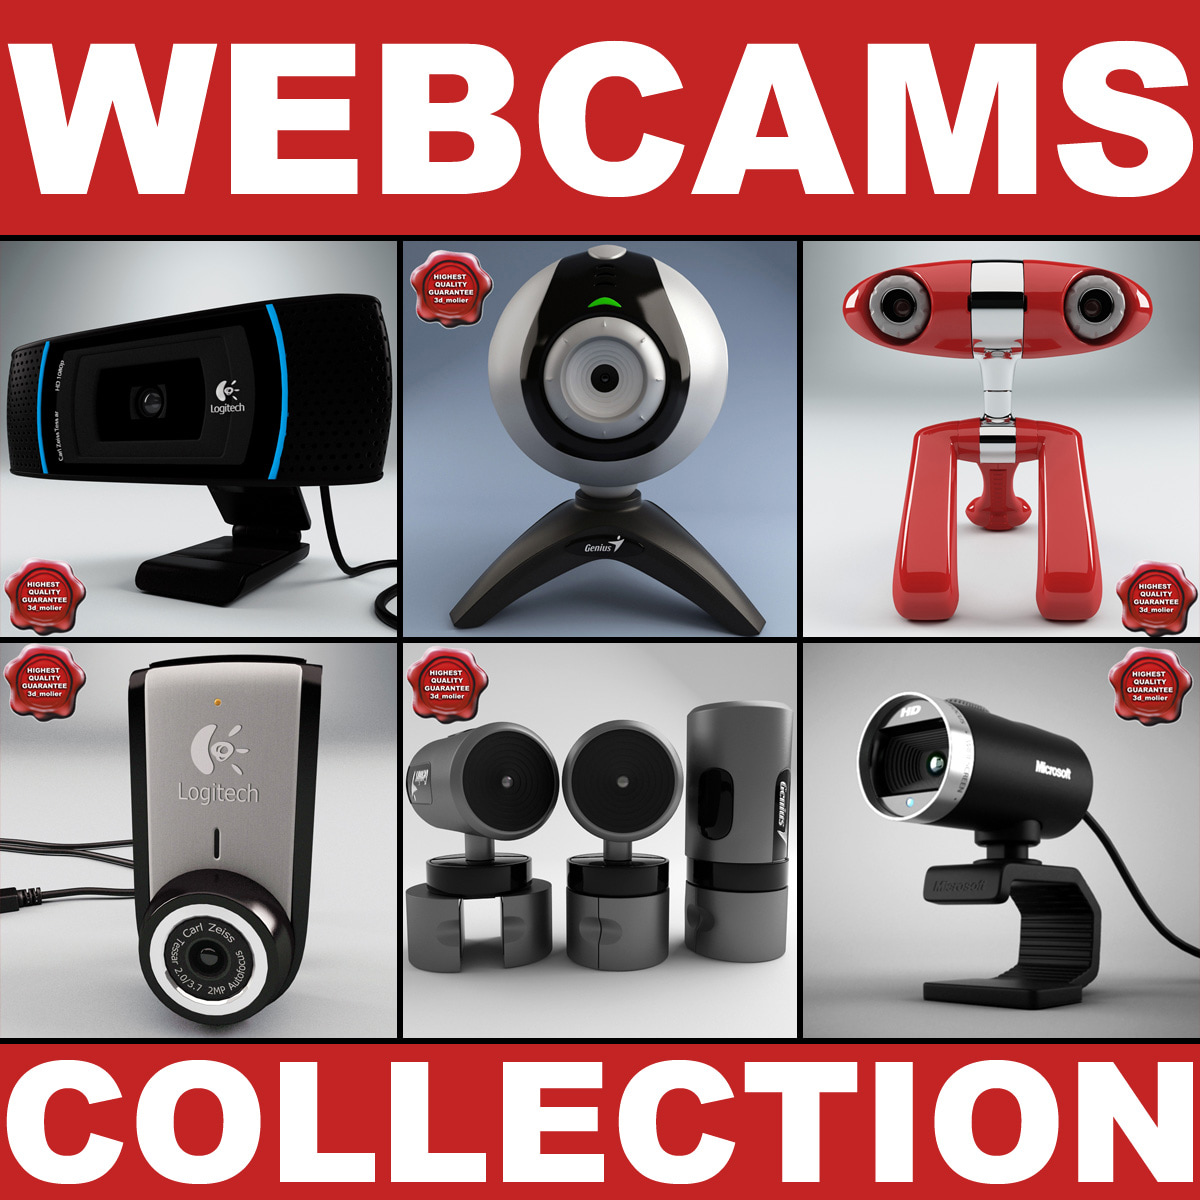 Webcams_Collection_V2_000.jpg